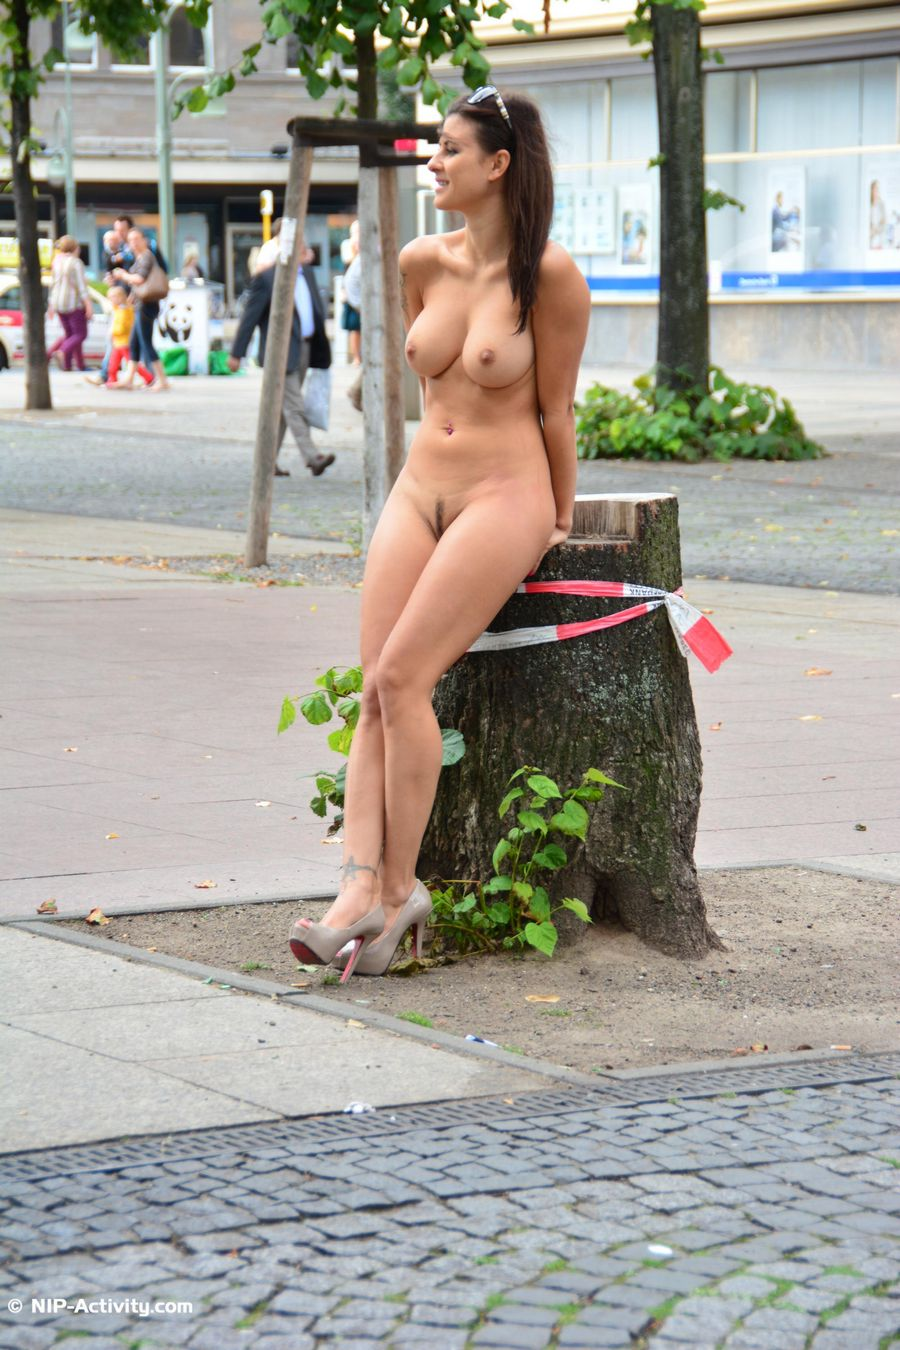 Nudes of girls in public places